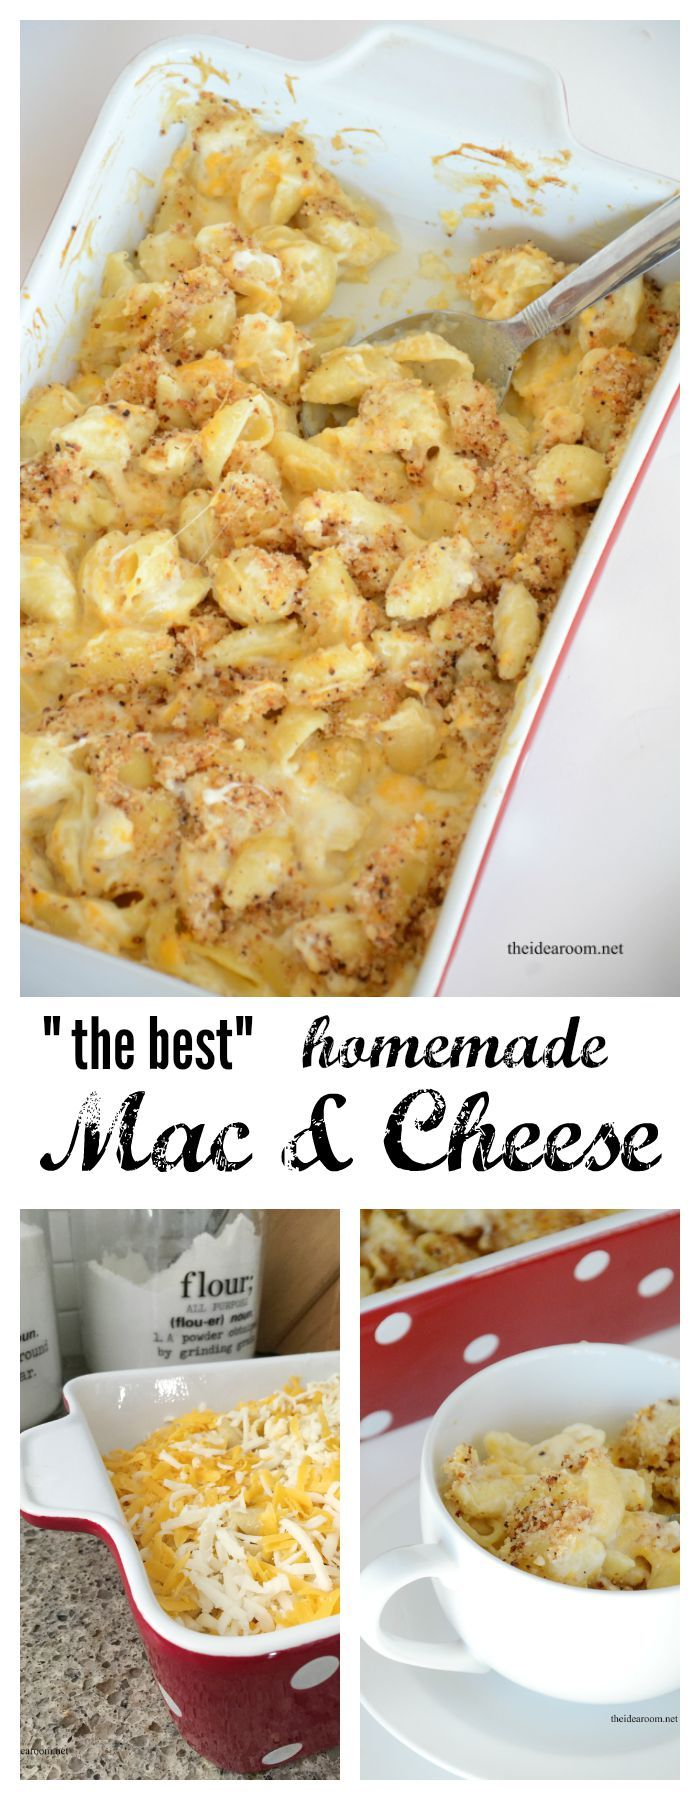 The-Best-Homemade-Mac-and-Cheese-Recipe